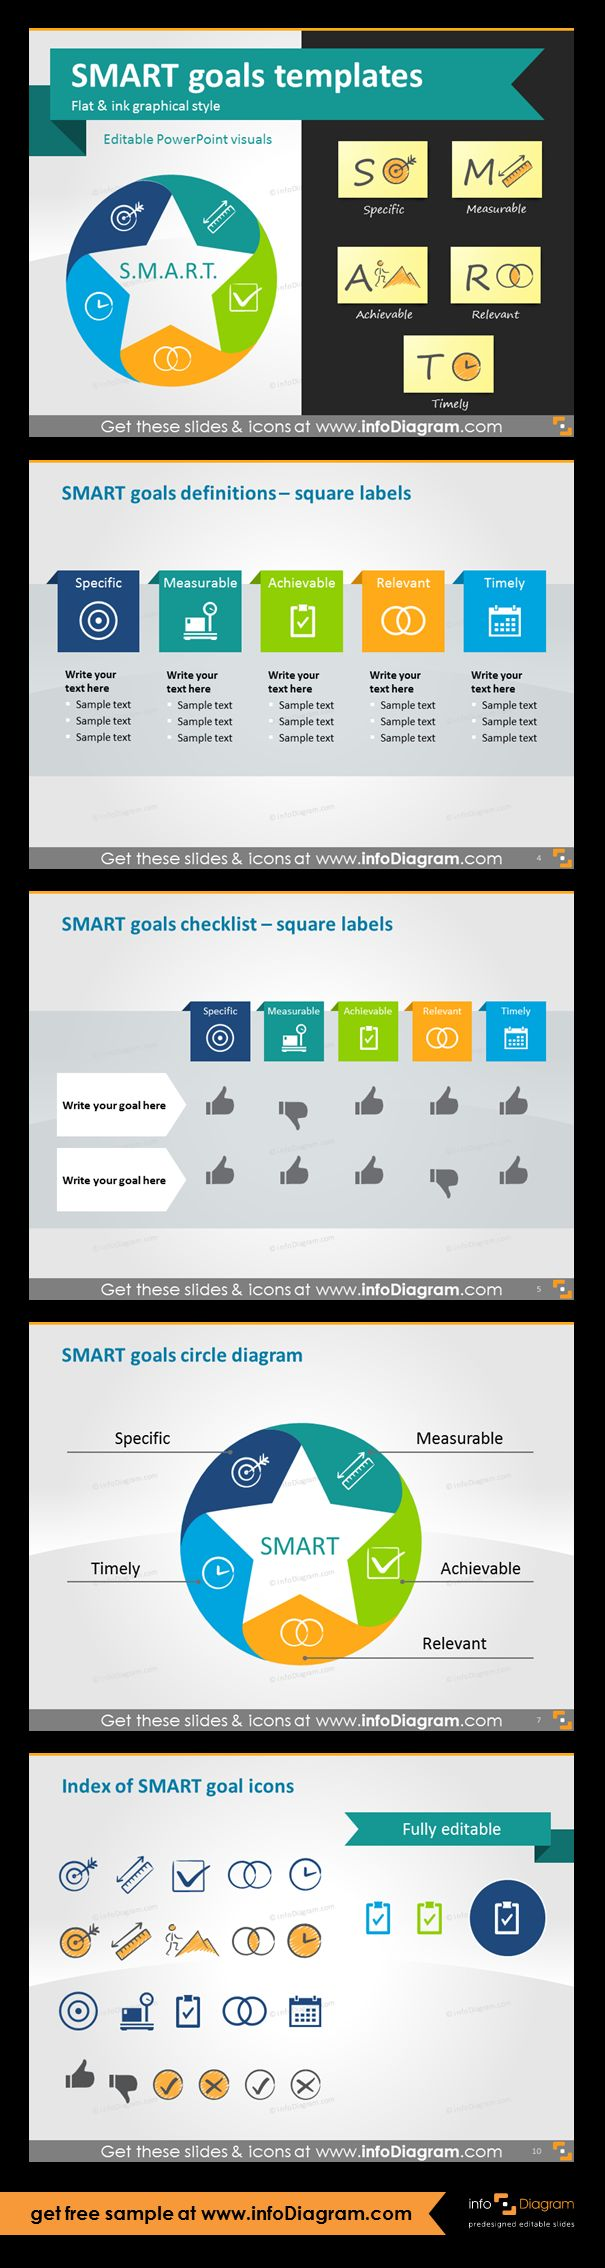 SMART goals setting graphics for business presentations. SMART goals are used in project management, in HR for increasing employee performance, business planning or personal development. Using SMART is a powerful motivation tool. SMART goals definitions and checklist with square labels, SMART goals circle diagram, index of 13 fully editable icons for all five SMART characteristics in two graphical styles.